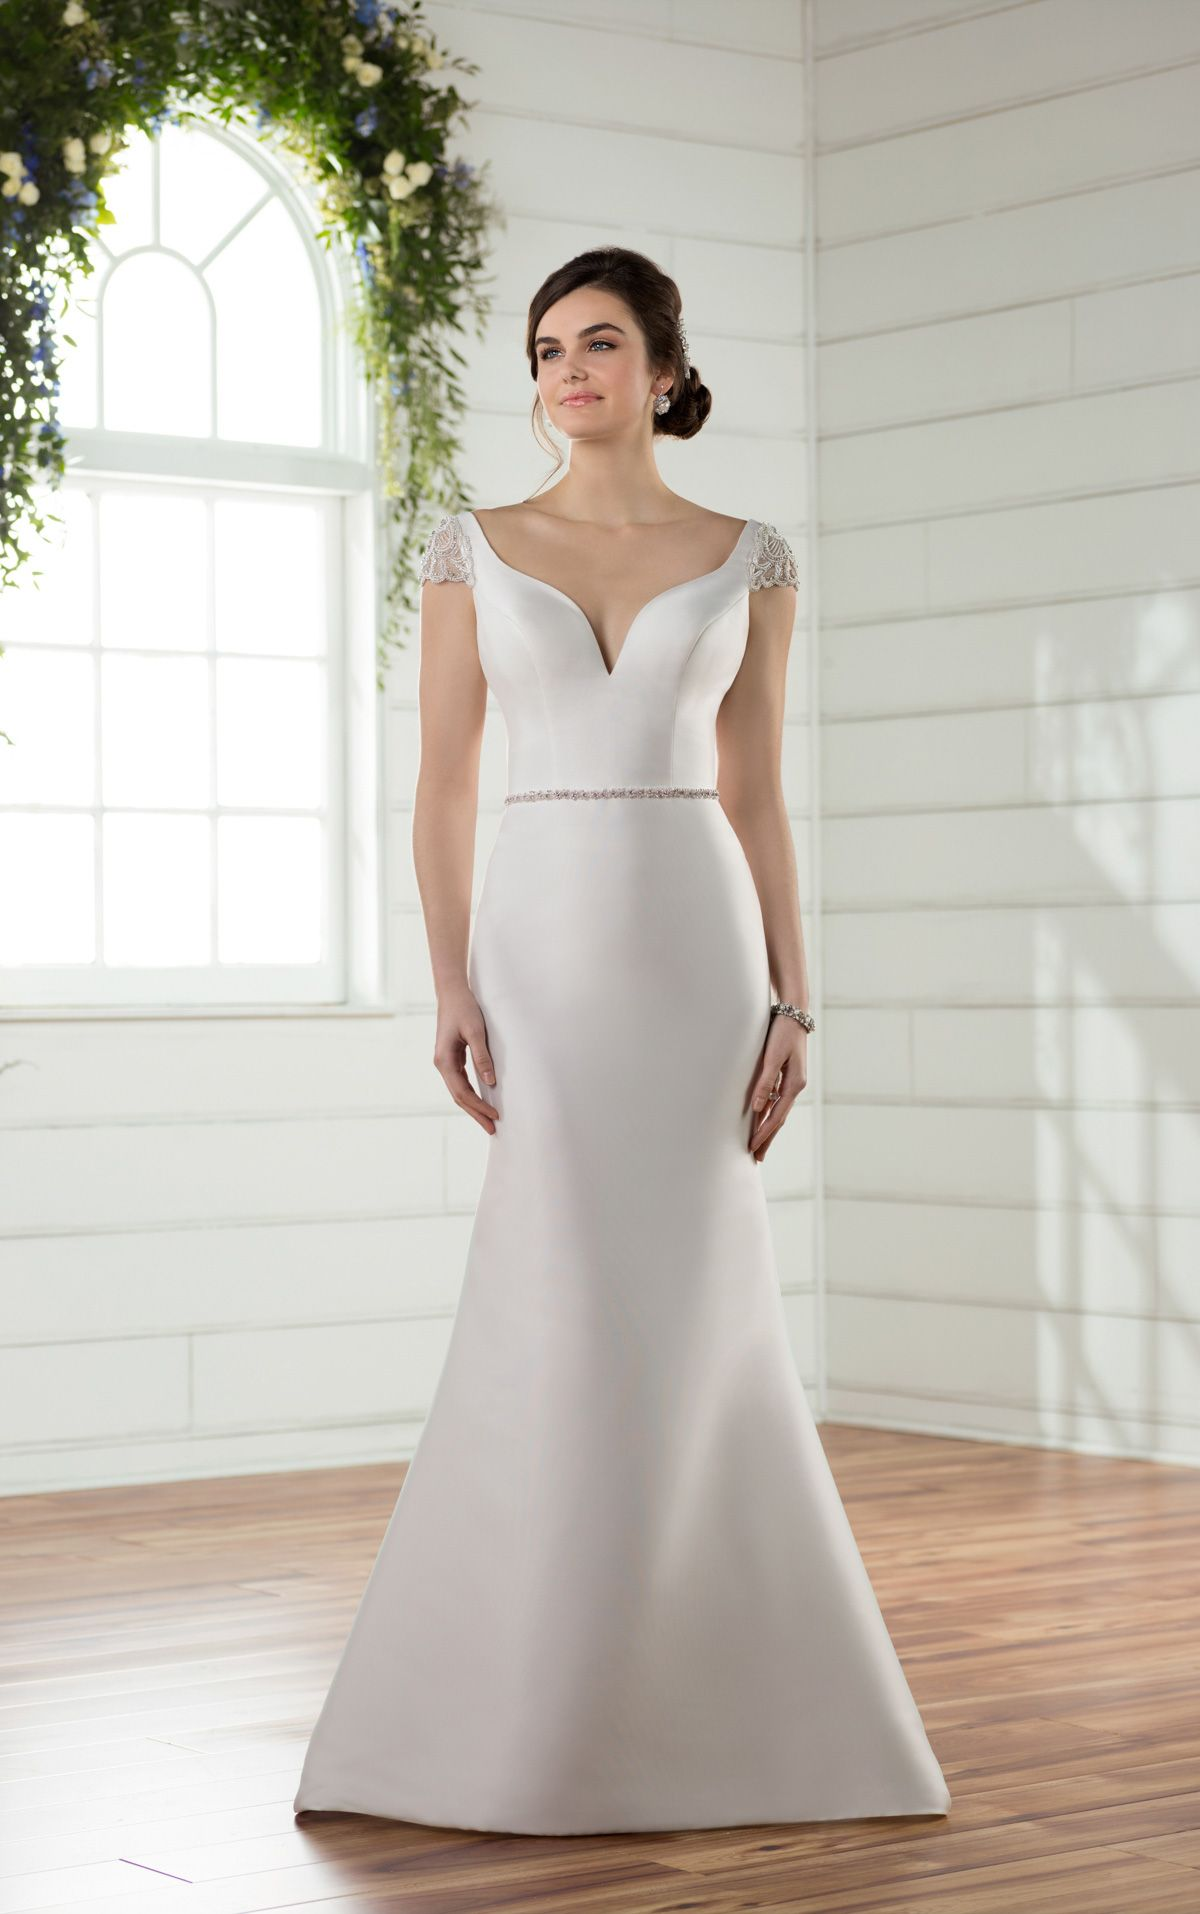 Wedding dresses mermaid wedding dresses mermaid silhouette and